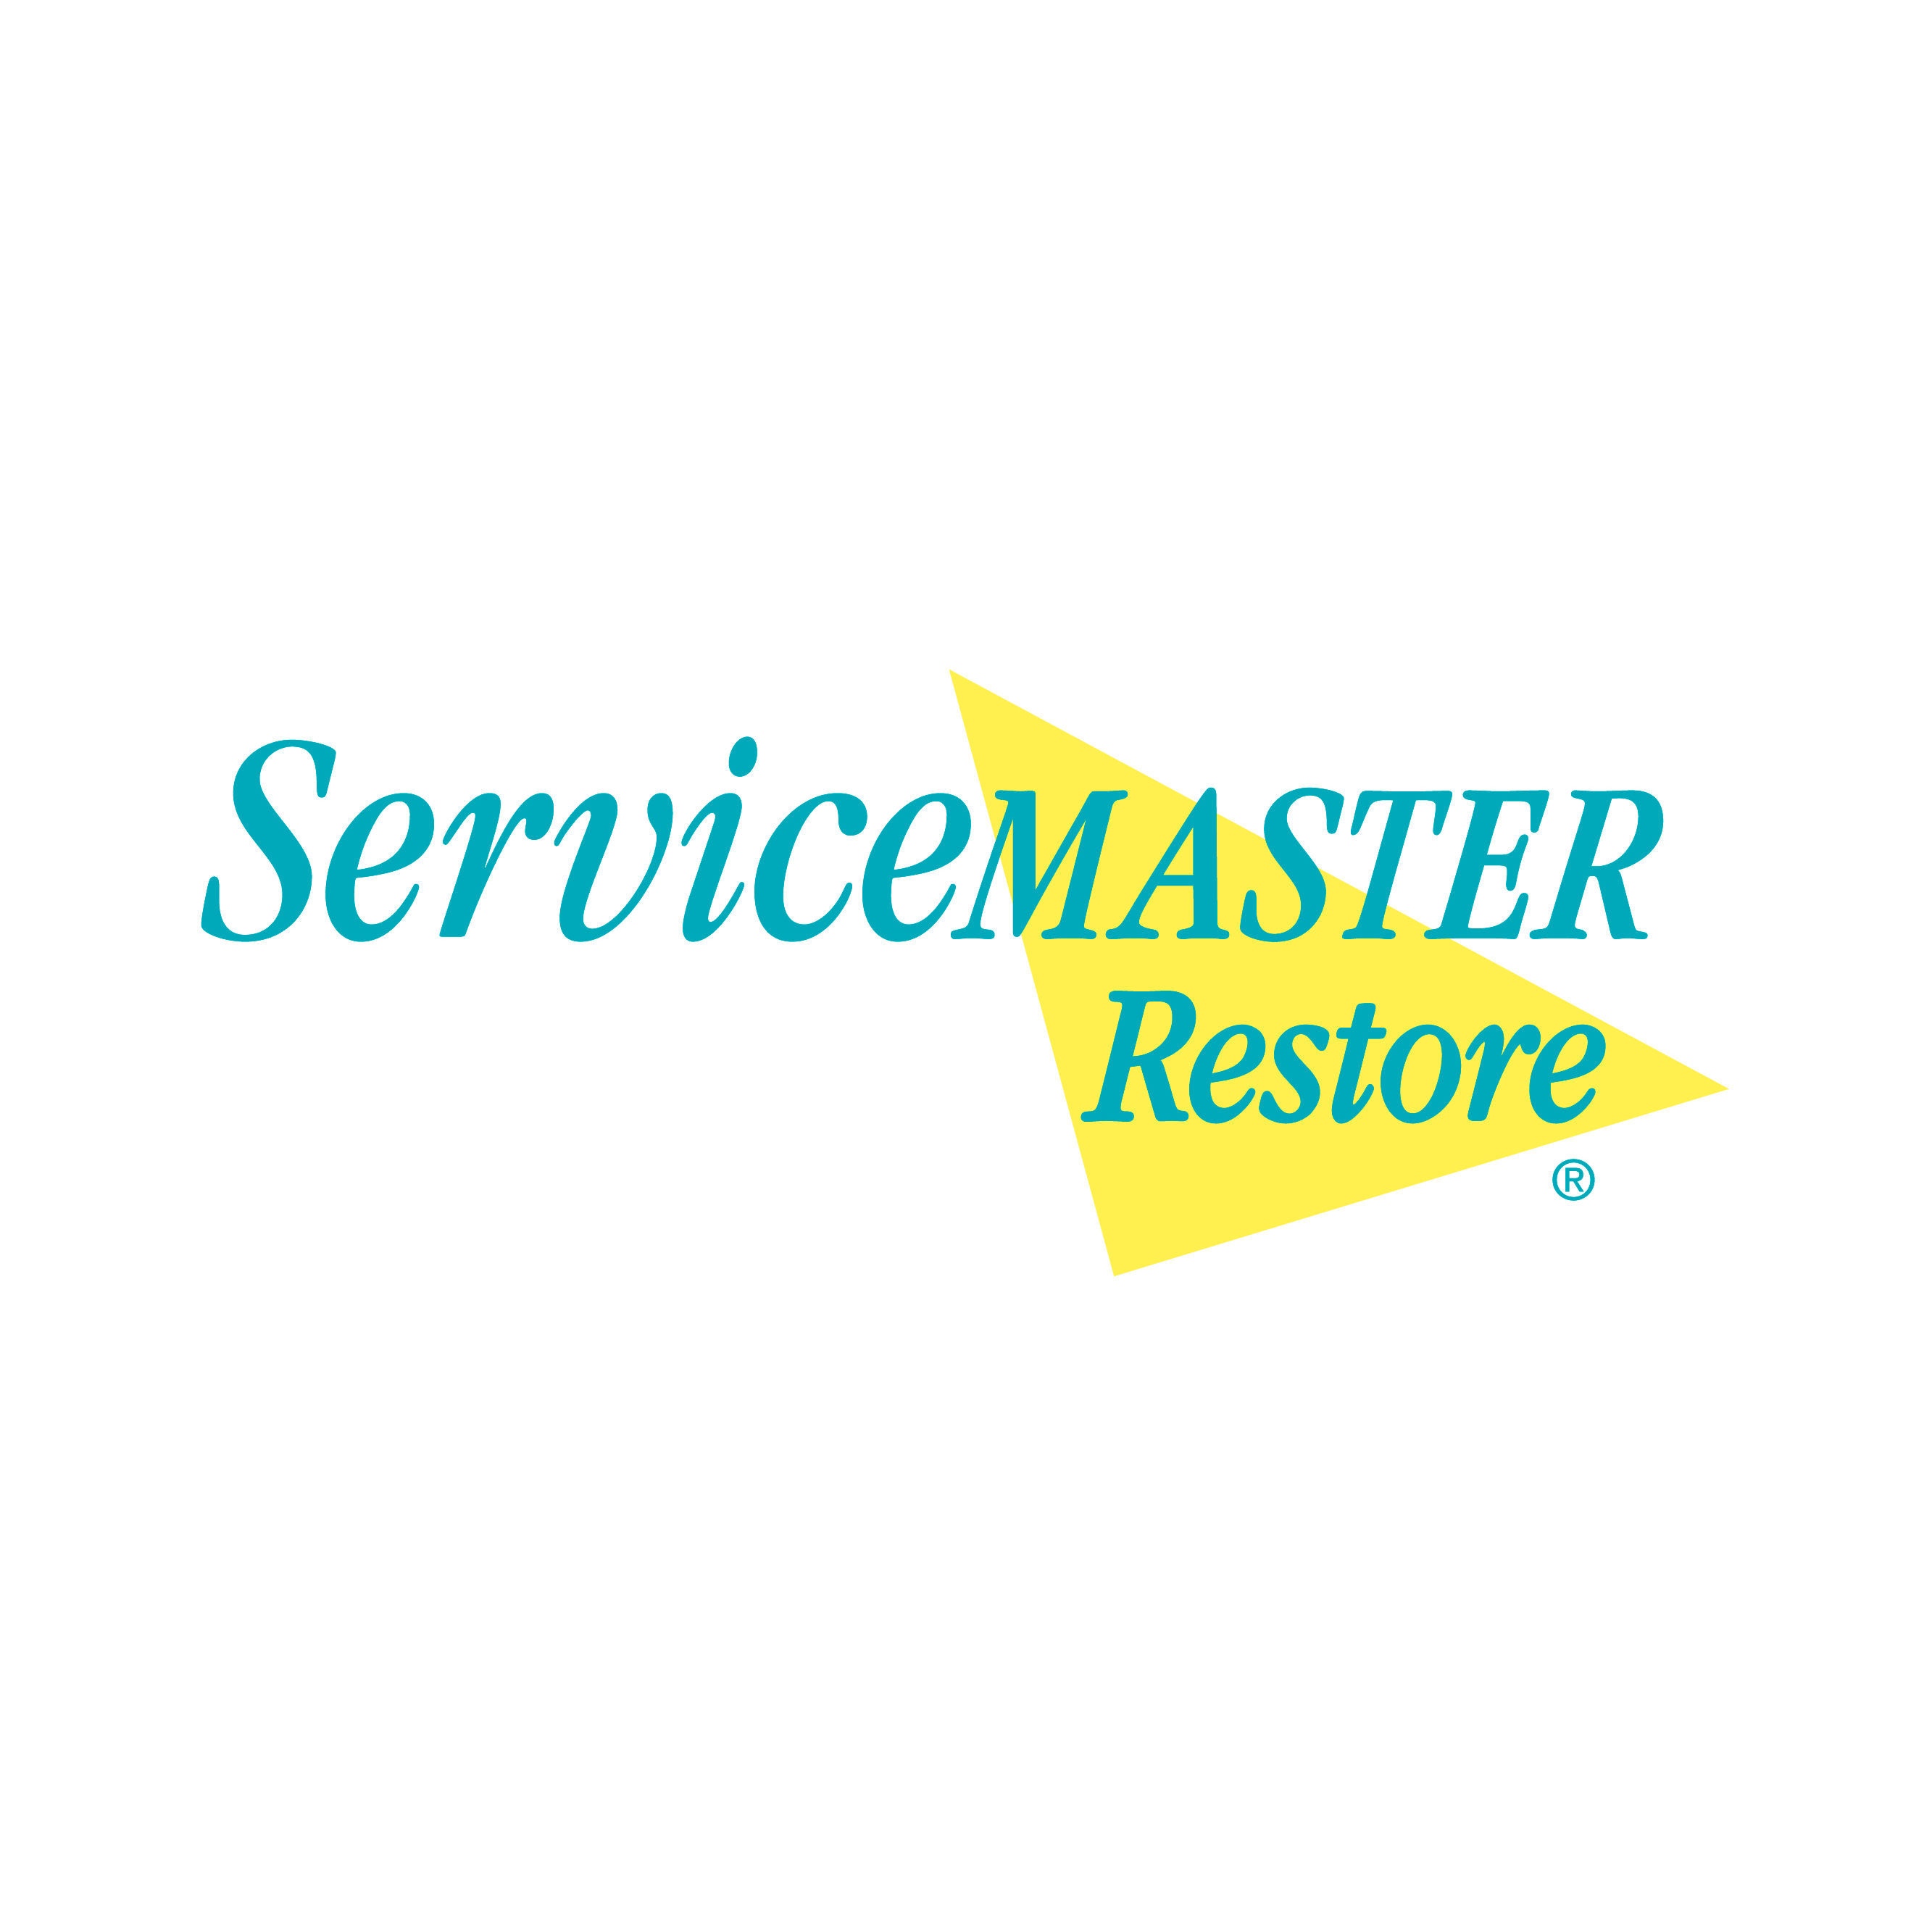 ServiceMaster Restoration by Howard